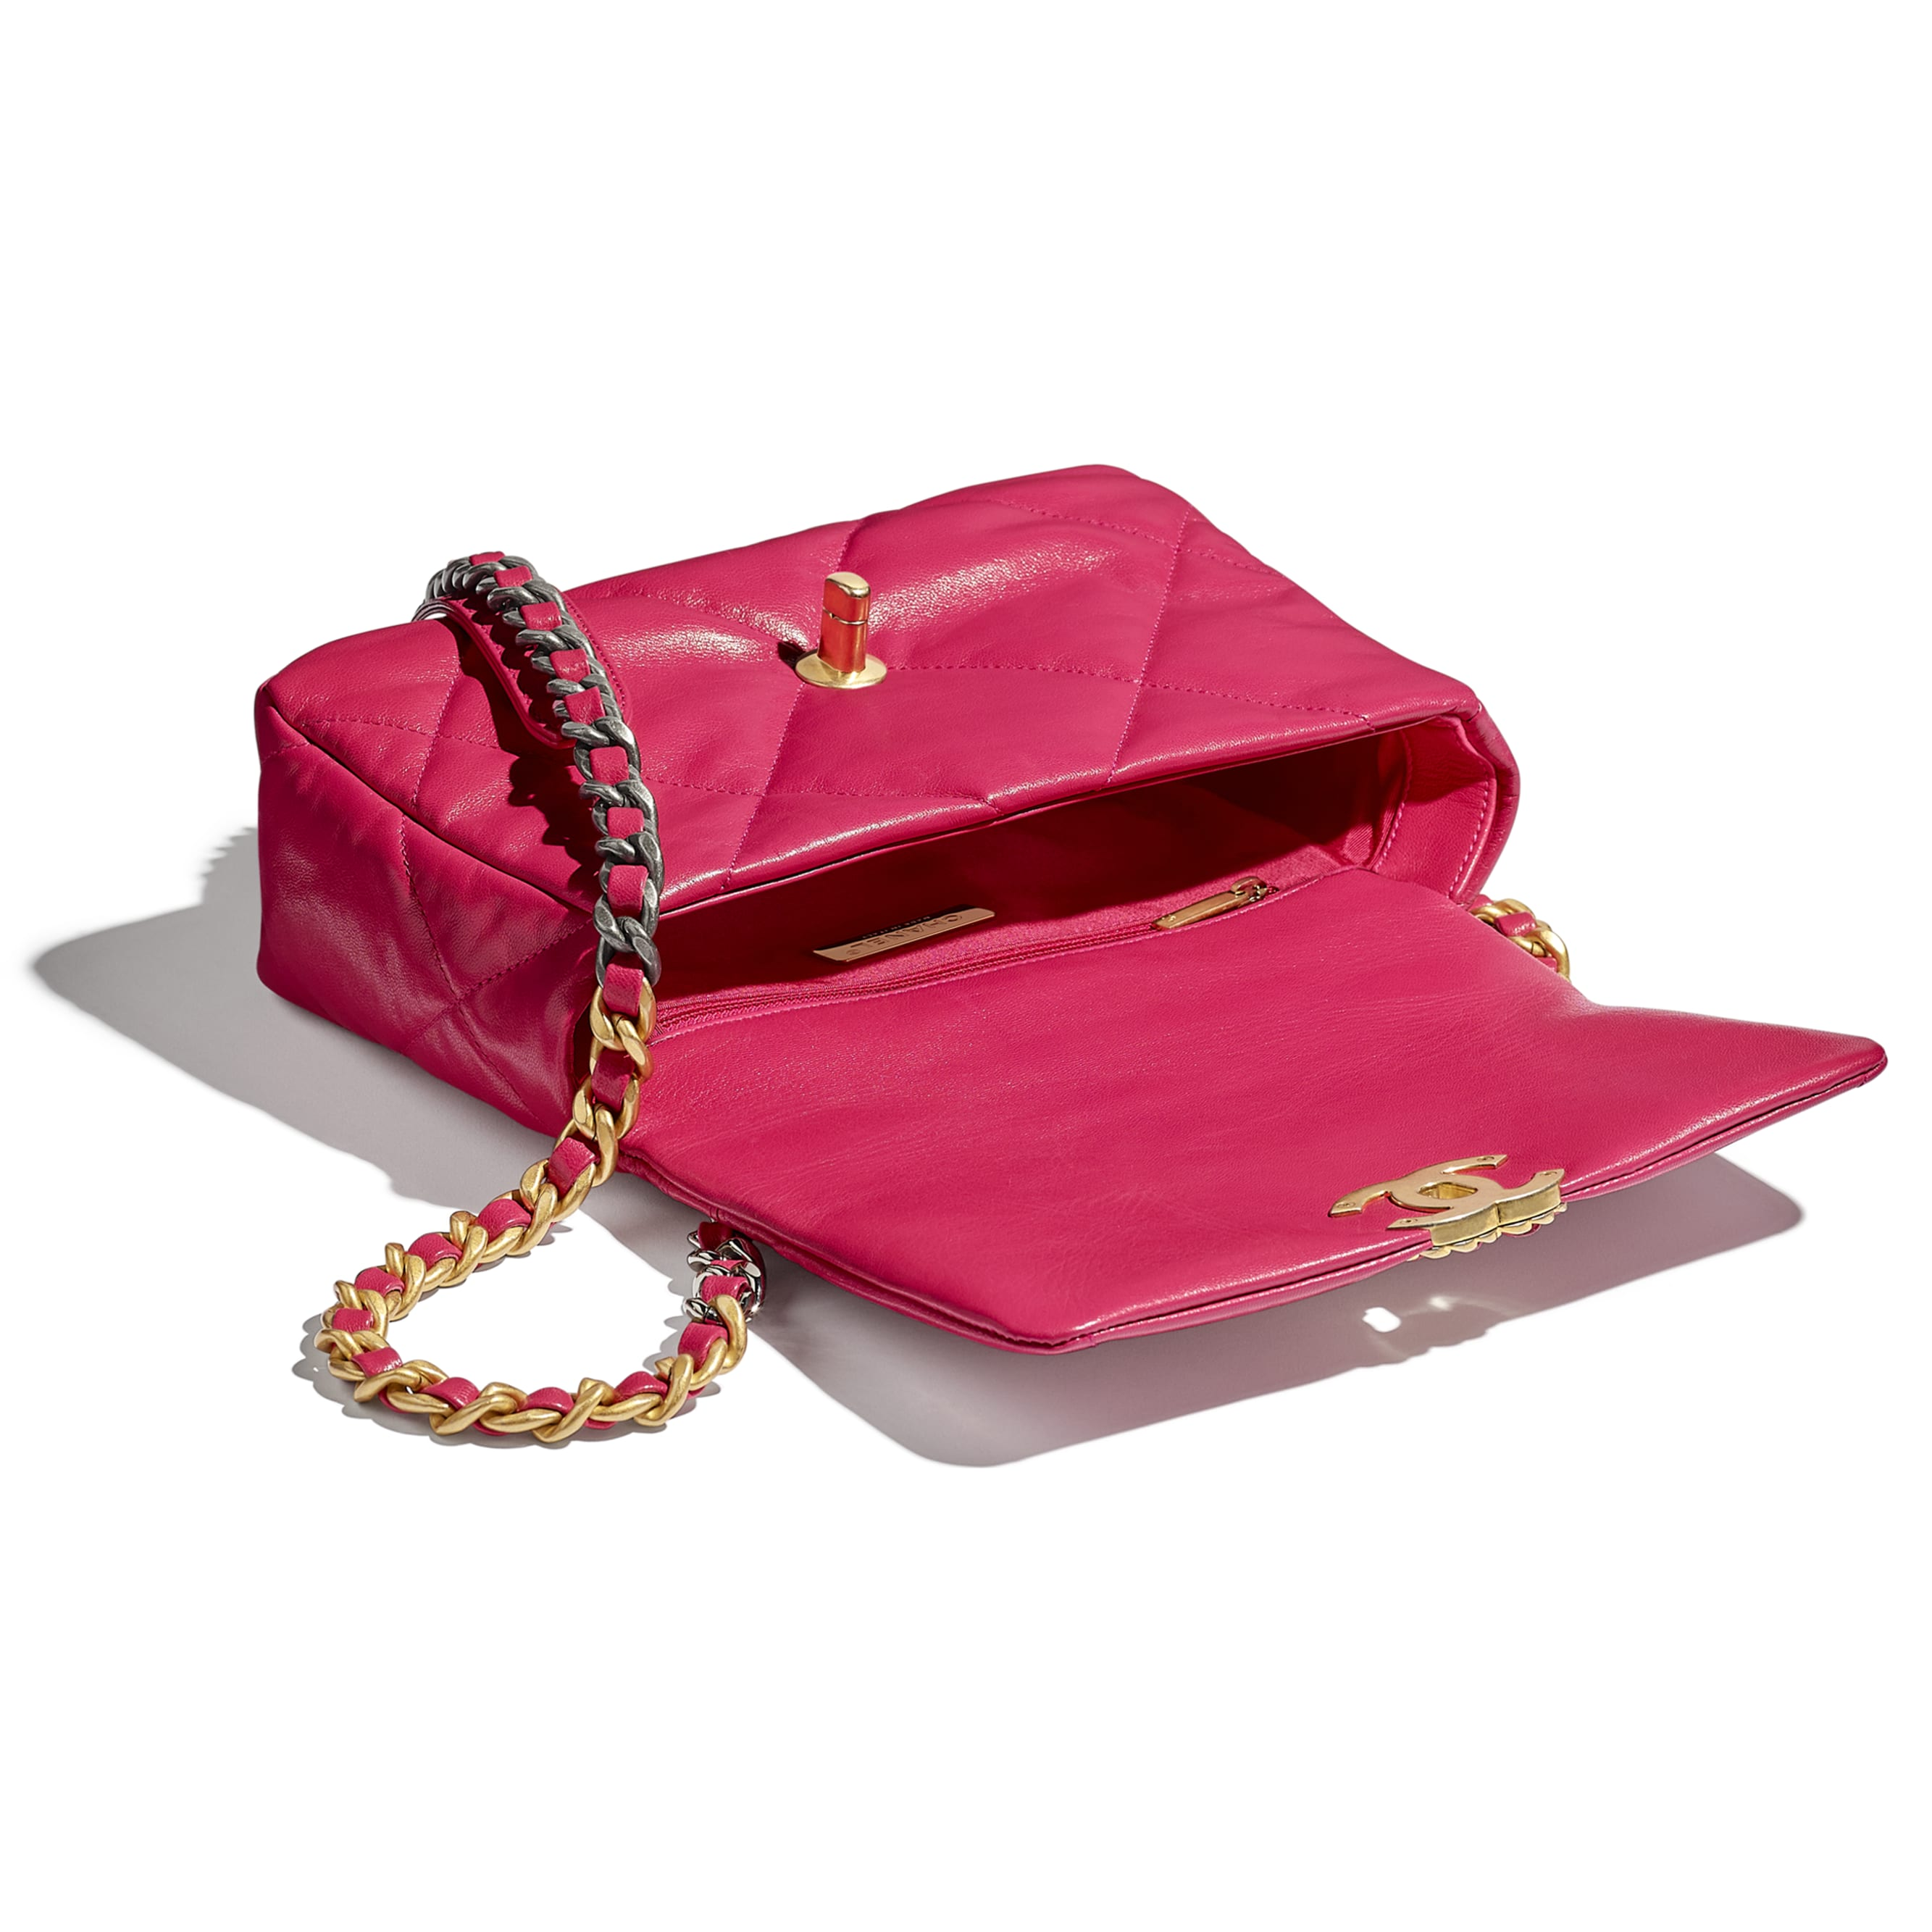 CHANEL 19 Flap Bag - Pink - Goatskin, Gold-Tone, Silver-Tone & Ruthenium-Finish Metal - CHANEL - Other view - see standard sized version